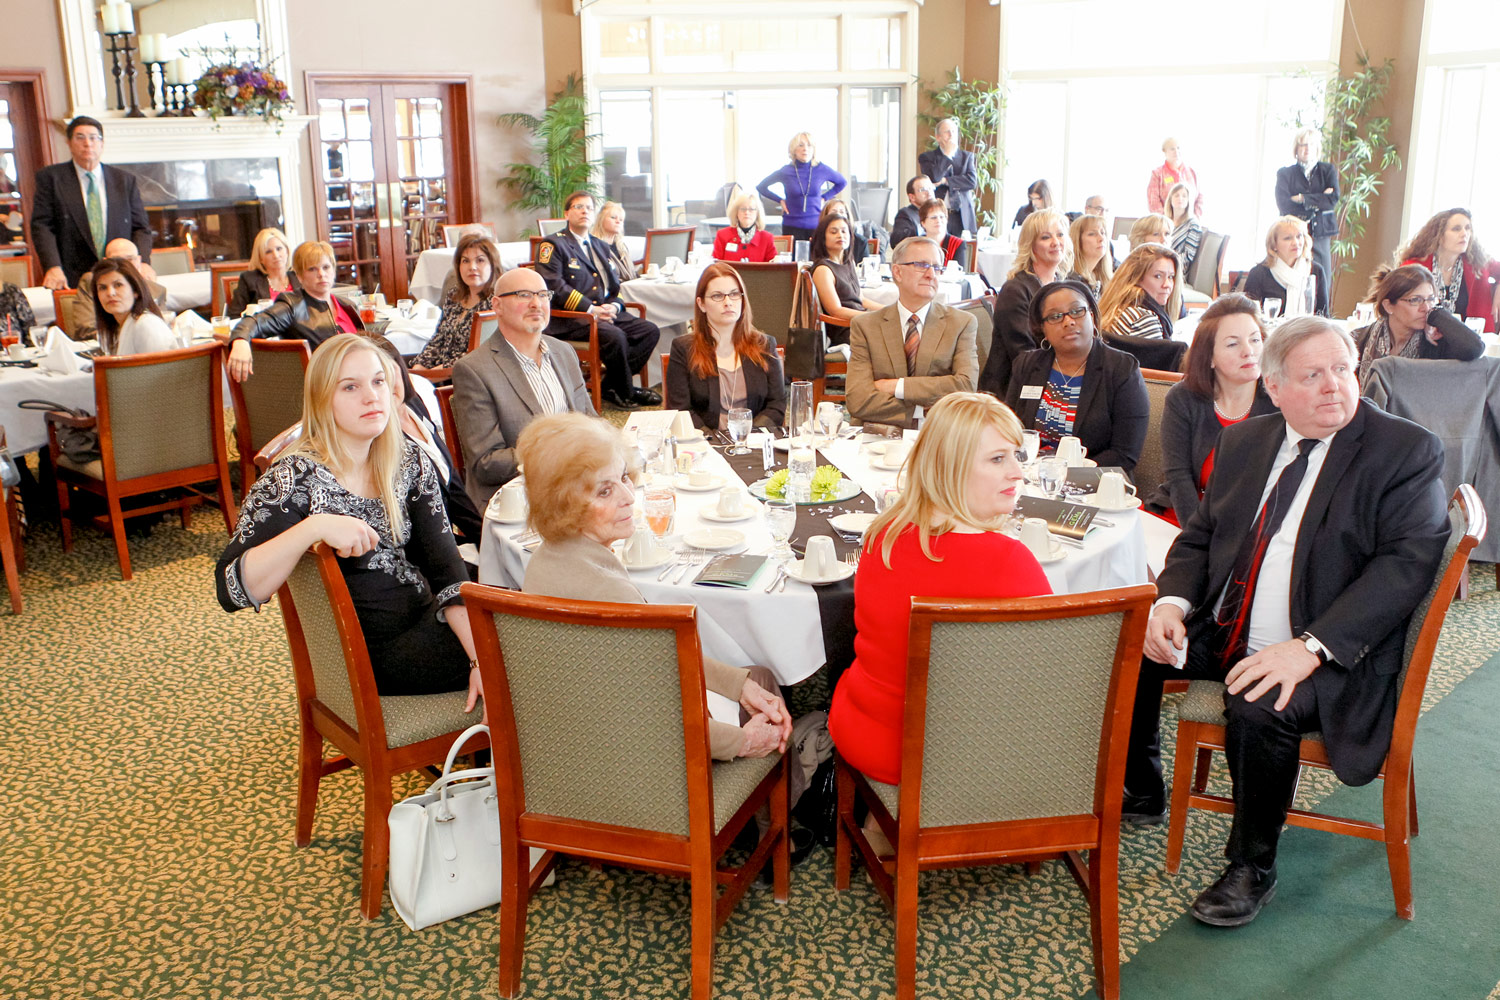 banquet-luncheon-event-photographer-madison-wi-ruthie-hauge-photography-03.jpg